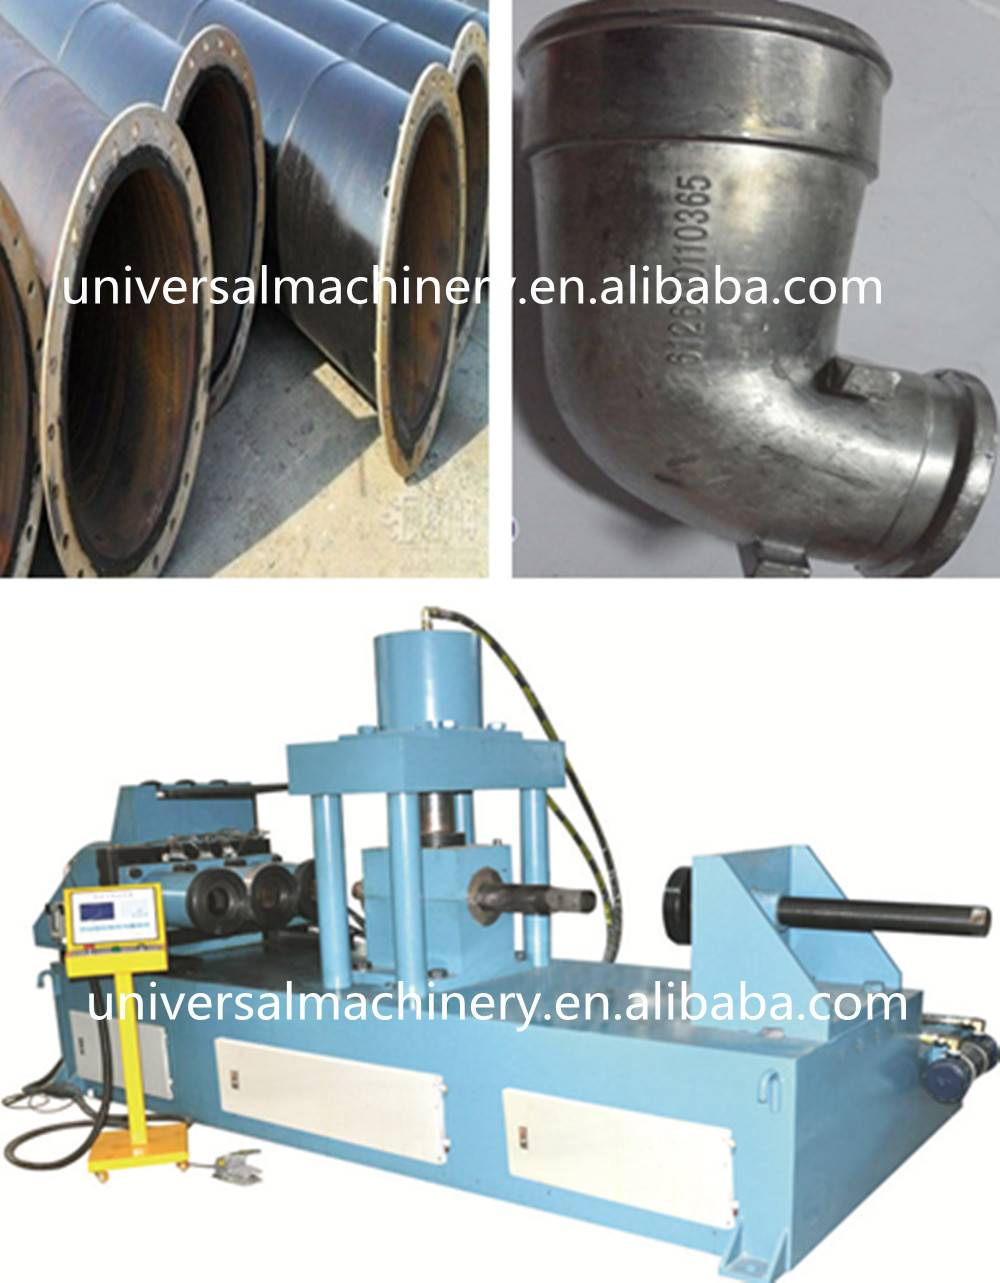 Global Warranty factory price Pipe Expanding Machine for pipe expanding reducing flanging